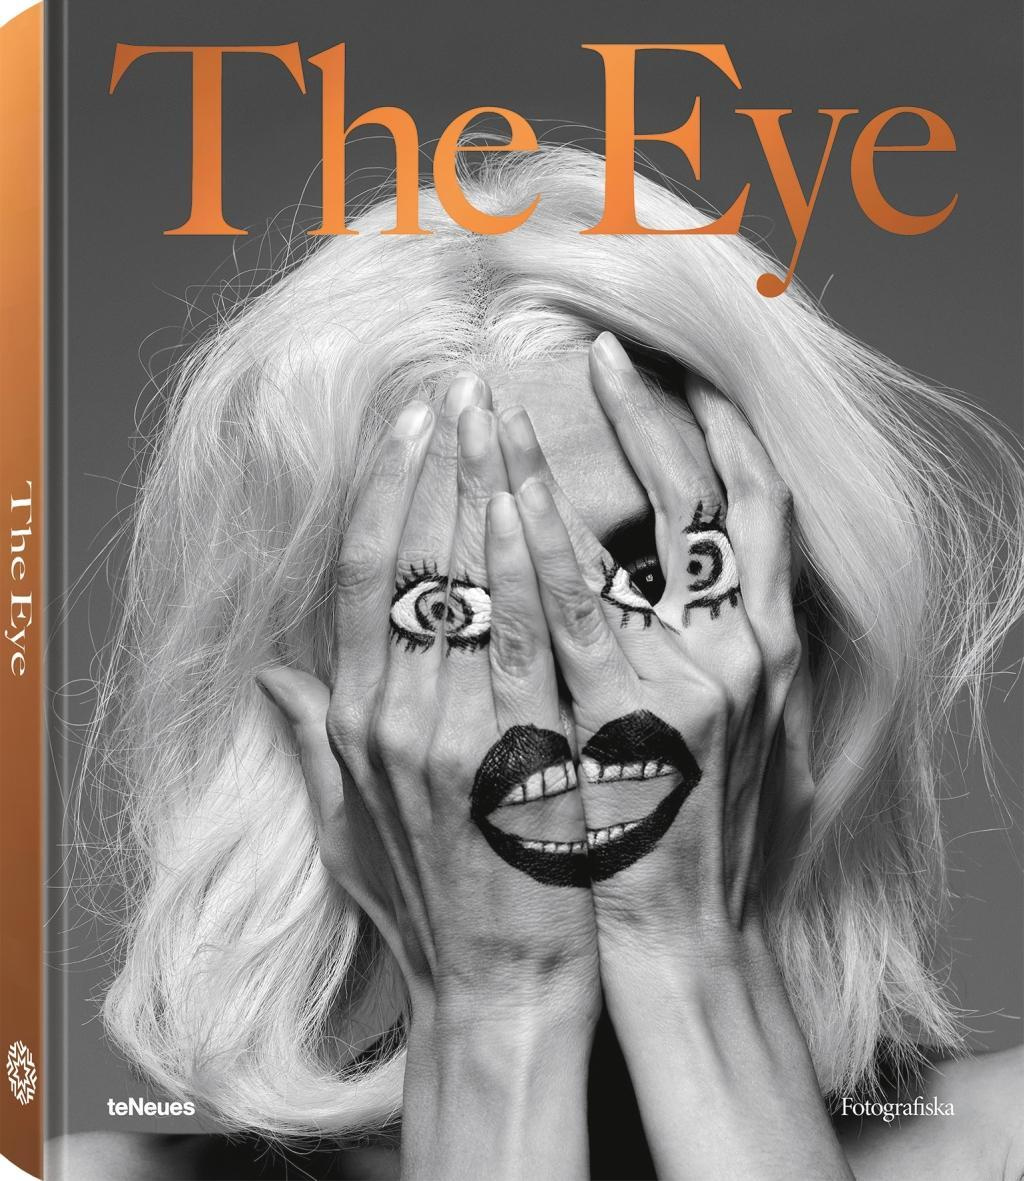 The Photography Art Review by Fotografiska by teNeues, ISBN: 9783961711130